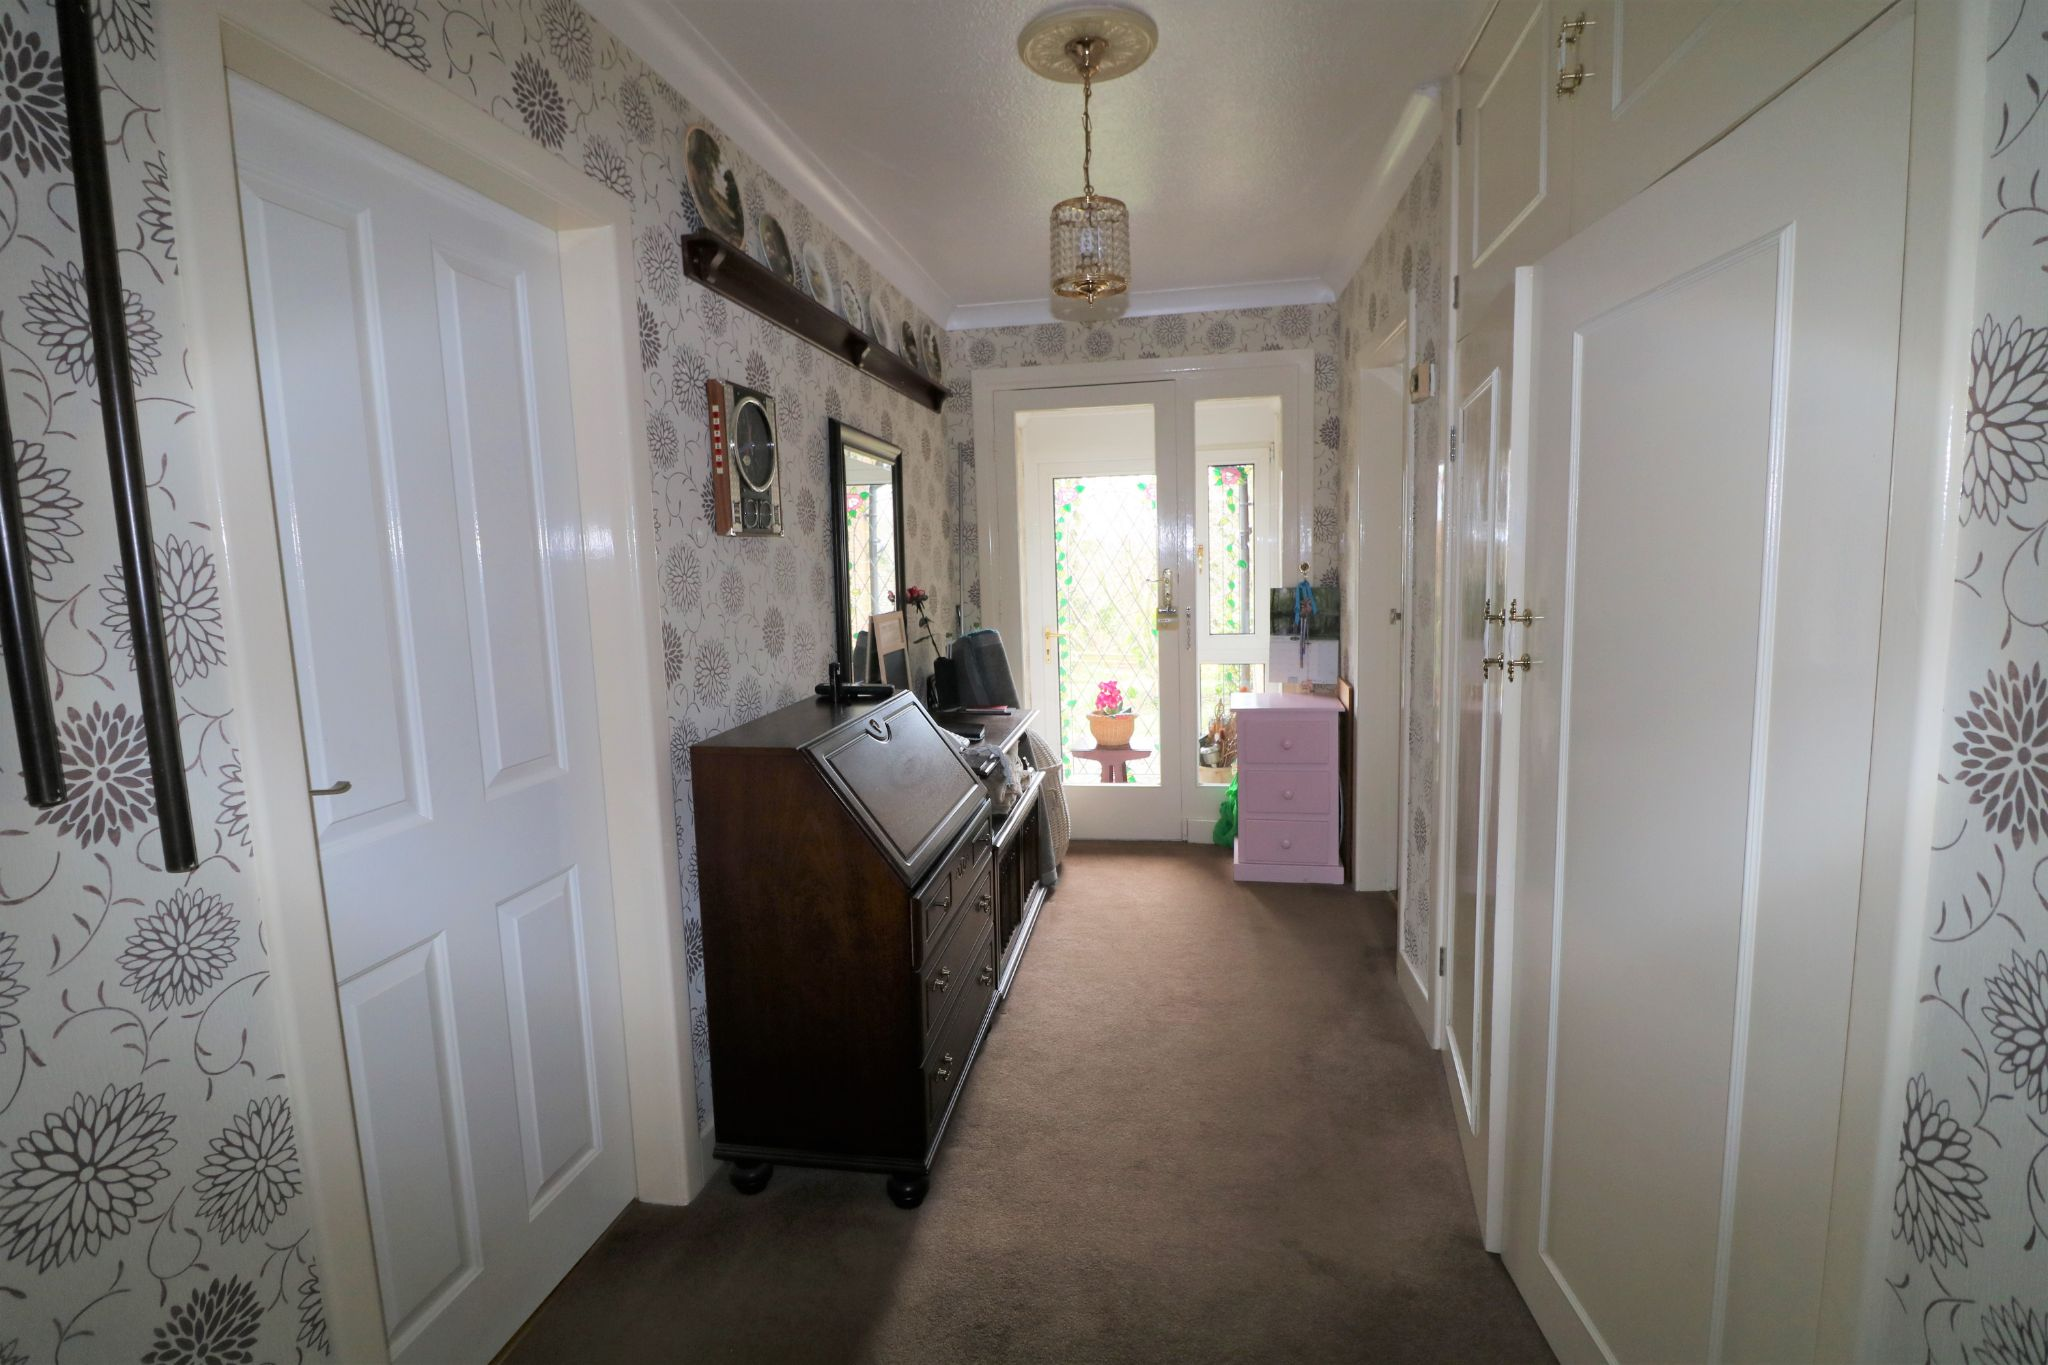 2 Bedroom Semi-detached House For Sale - Photograph 10